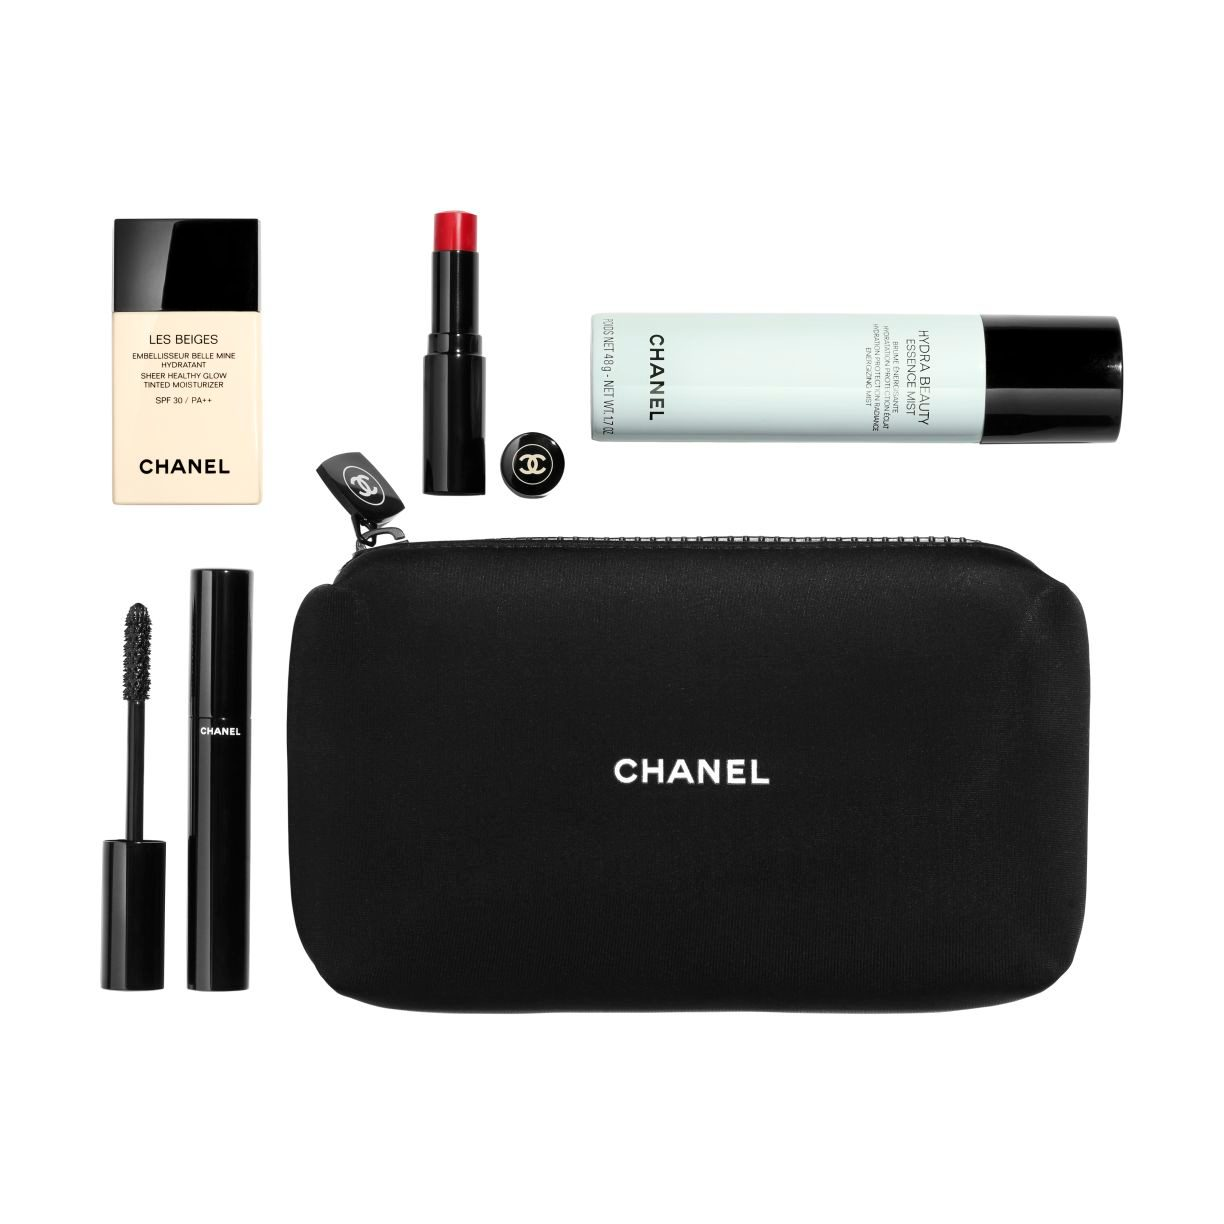 SET SPORT DE CHANEL GLI ESSENZIALI DI BELLEZZA PER LO SPORT MEDIUM LIGHT